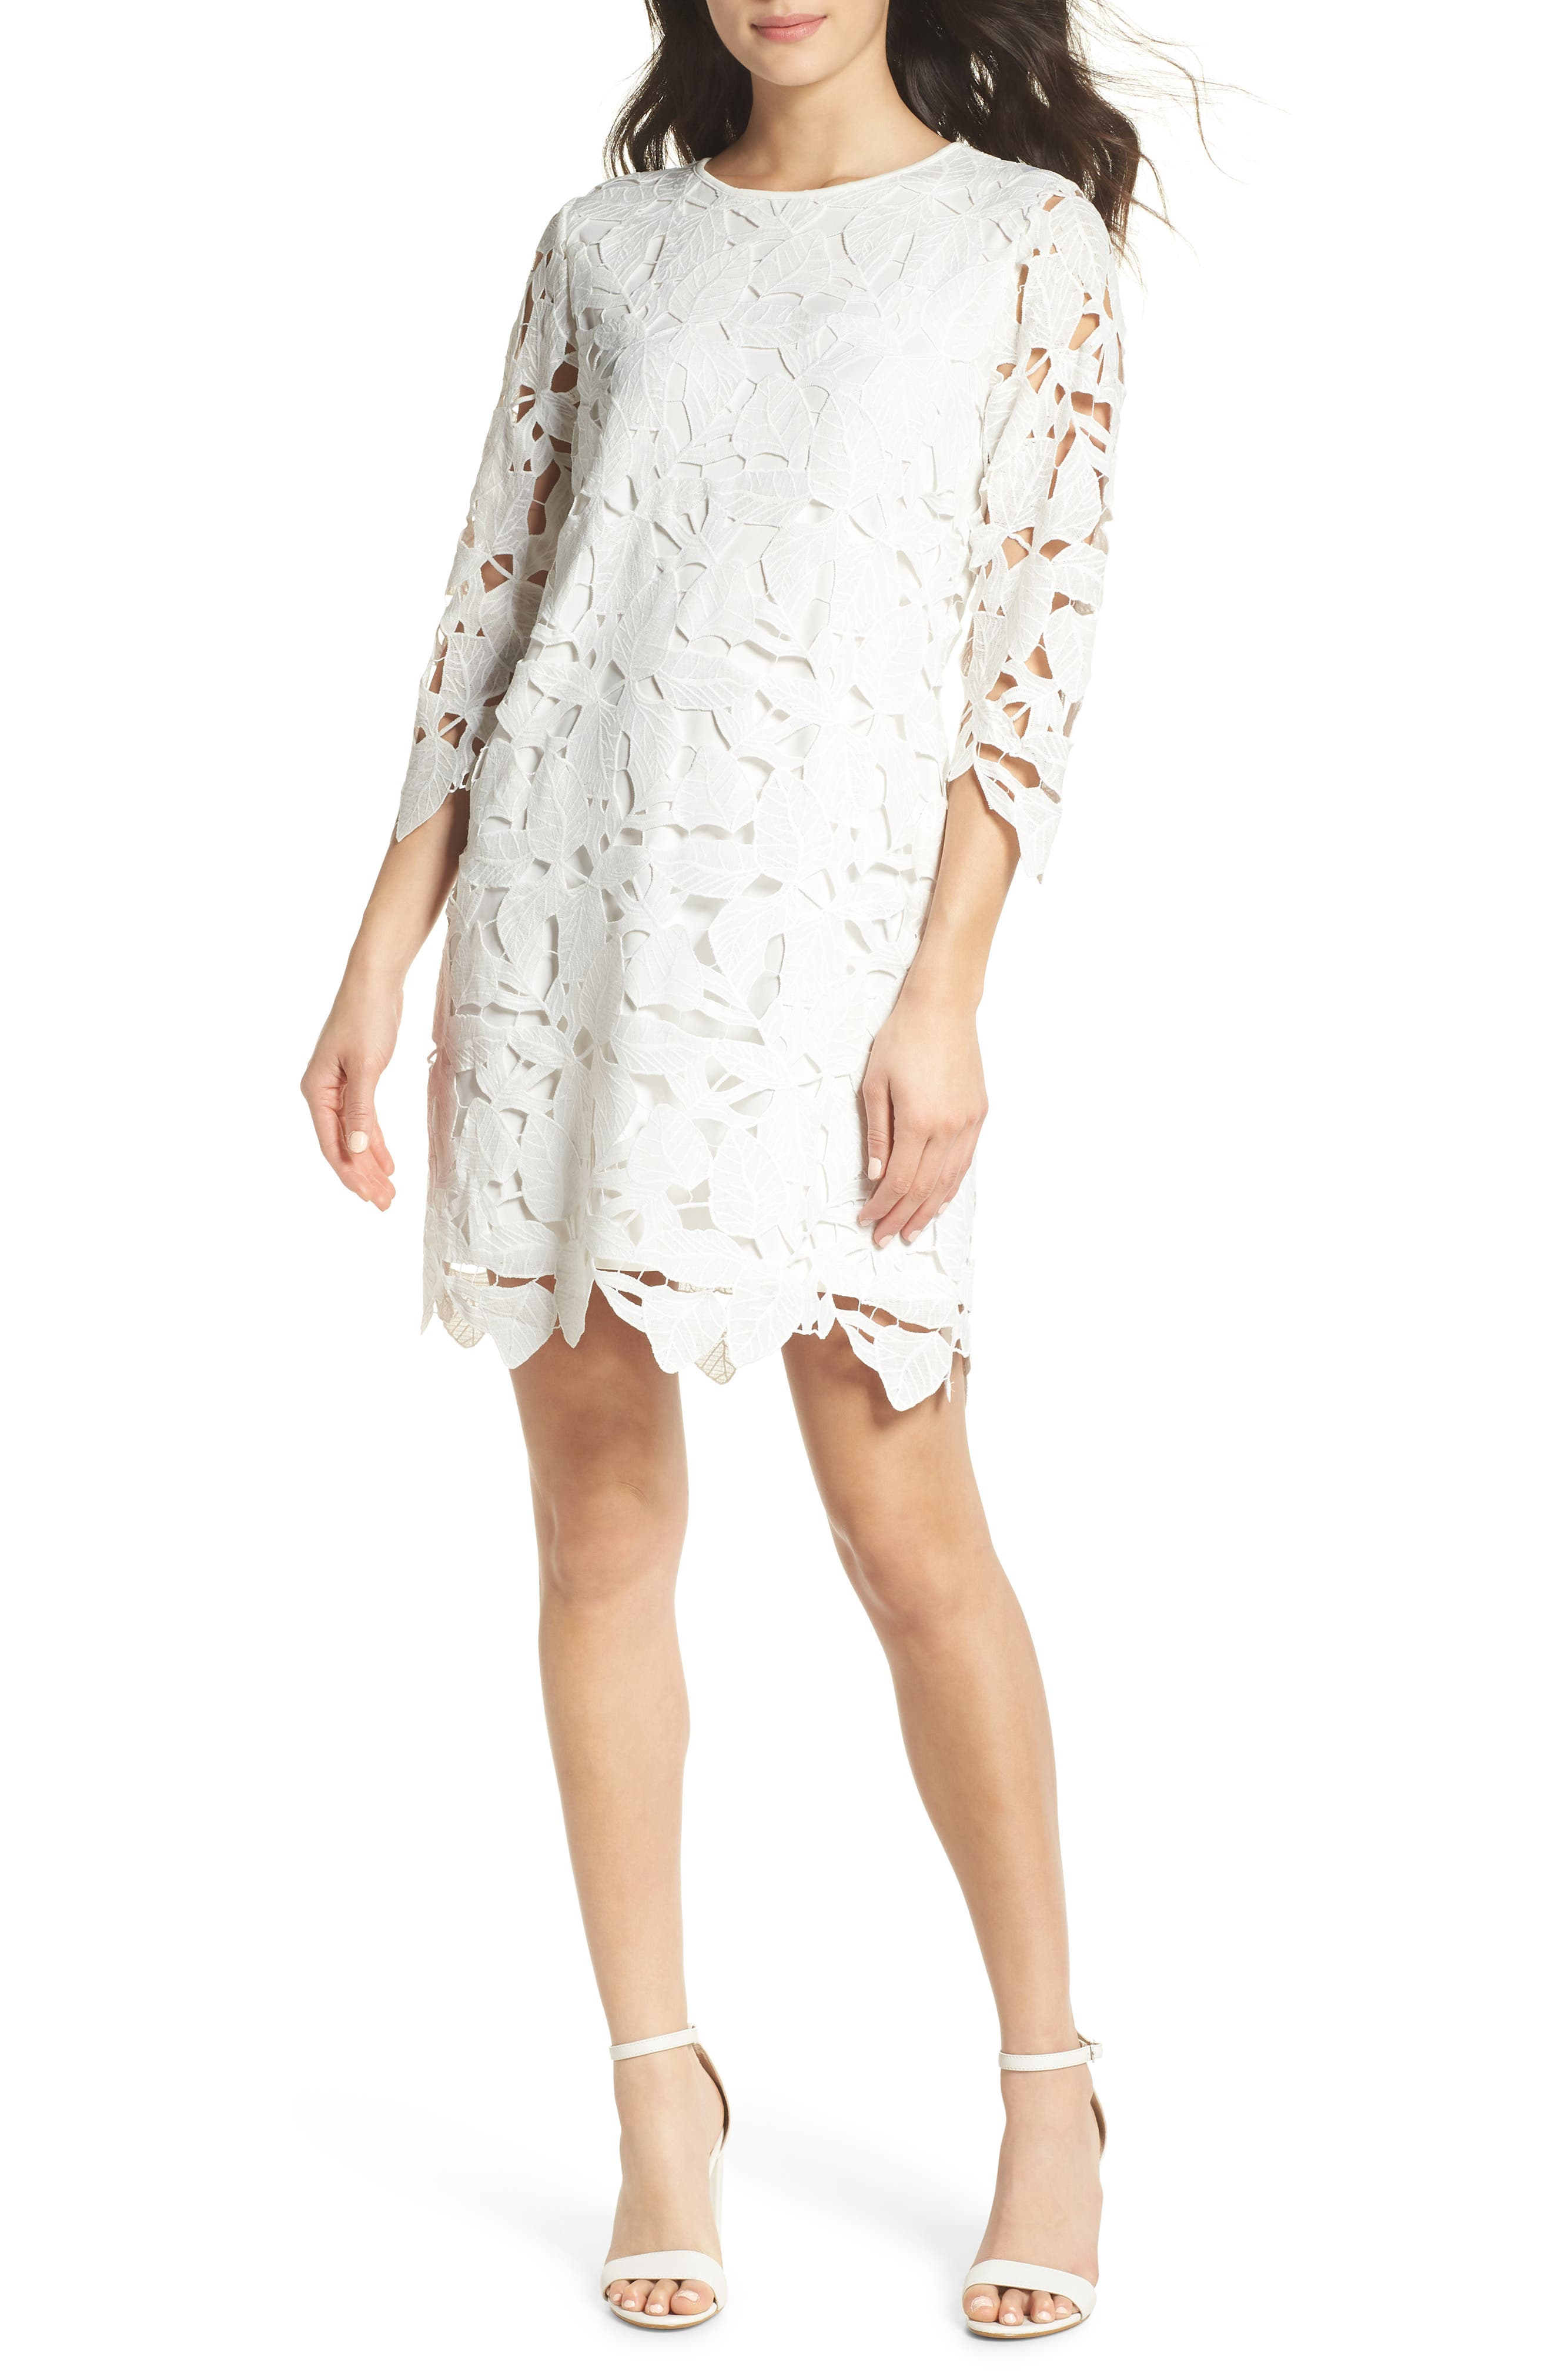 Skye Lace Shift Dress,                         Main,                         color, White